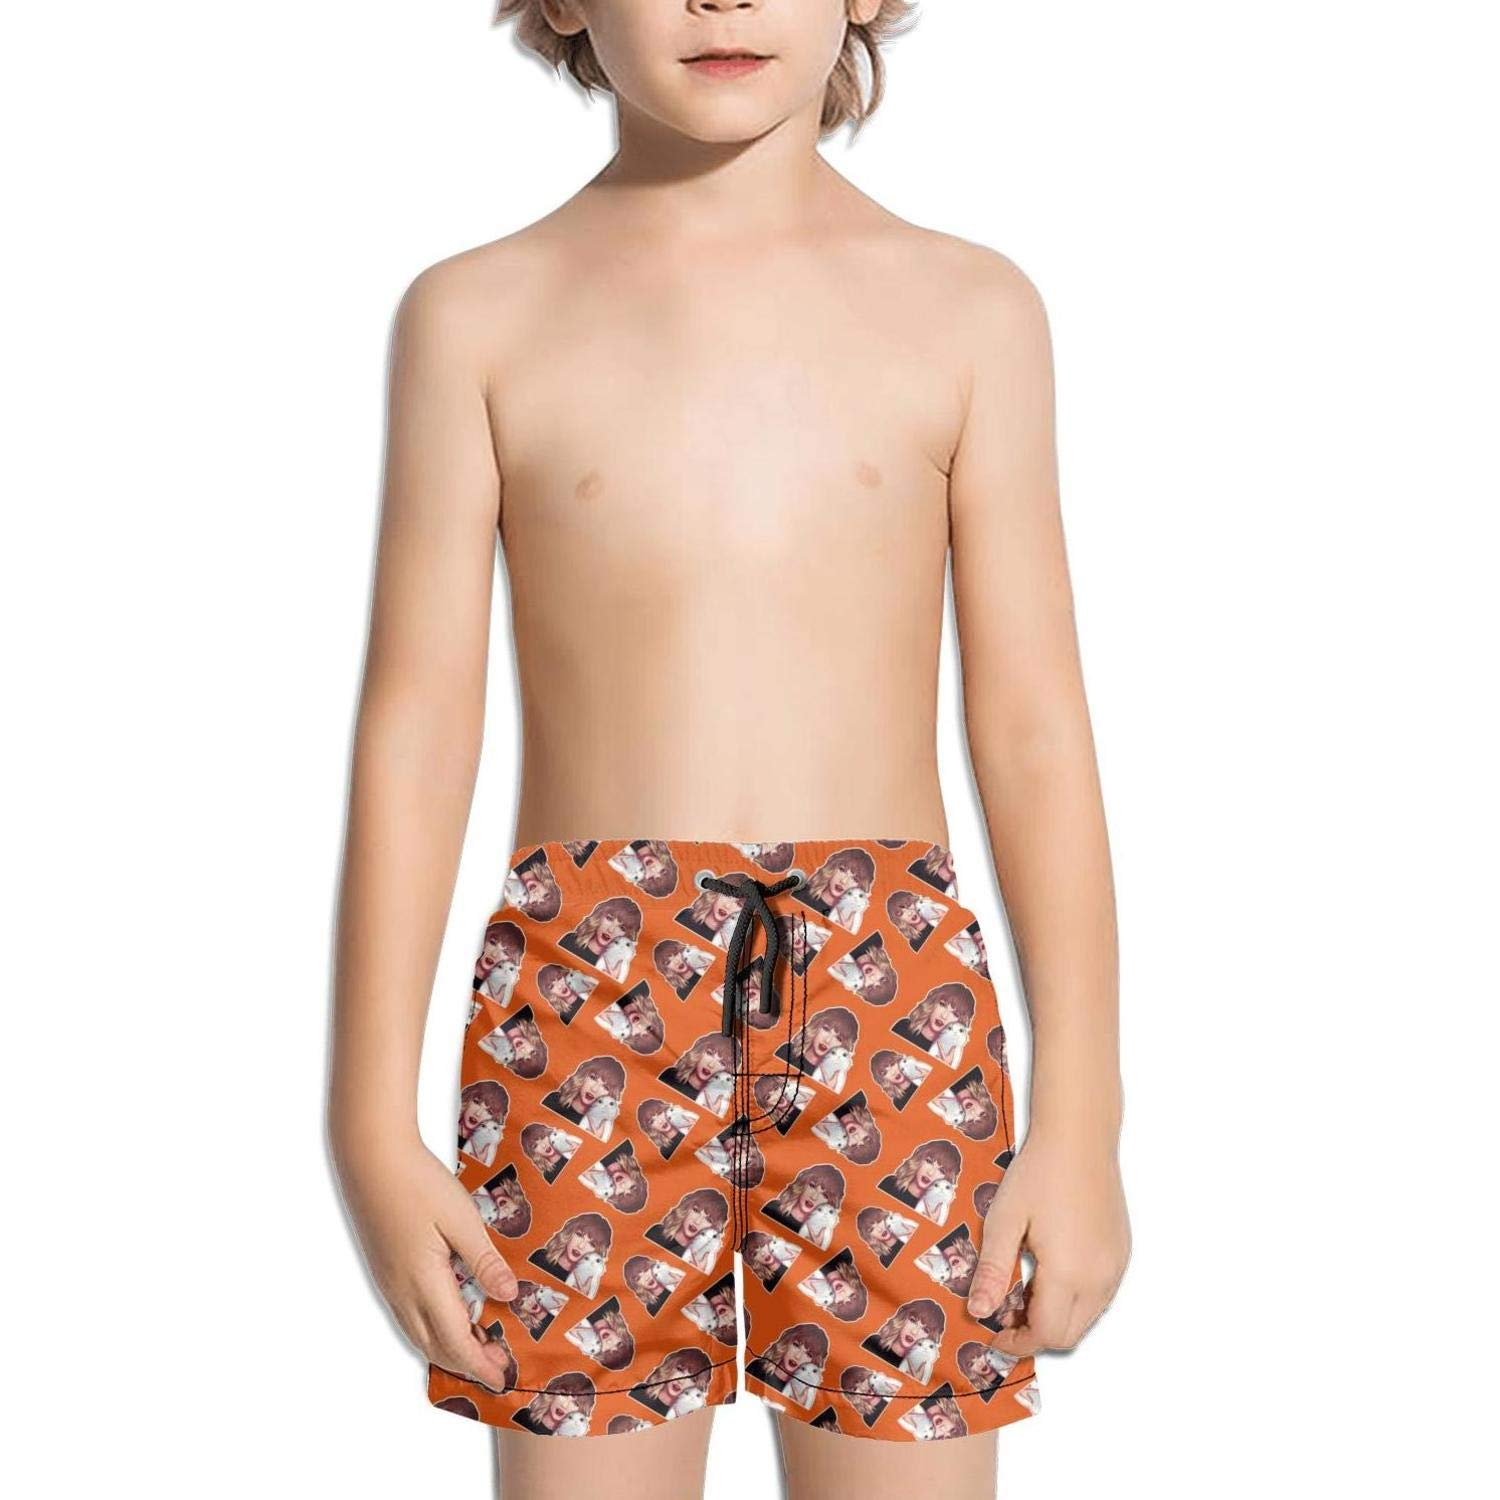 kattyy1 Kids Beachwear Slim Fit Solid Board Swimming Trunks Shorts